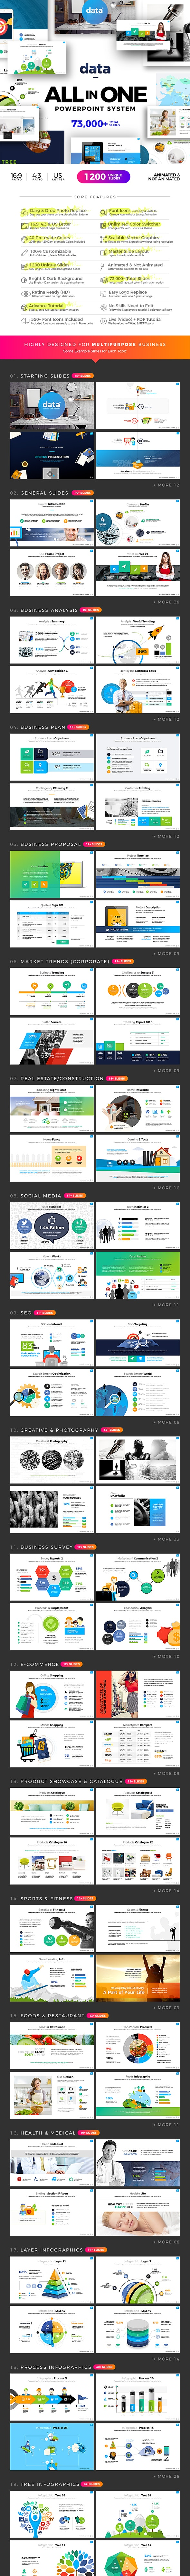 Data   Powerpoint Infographic System - Business PowerPoint Templates